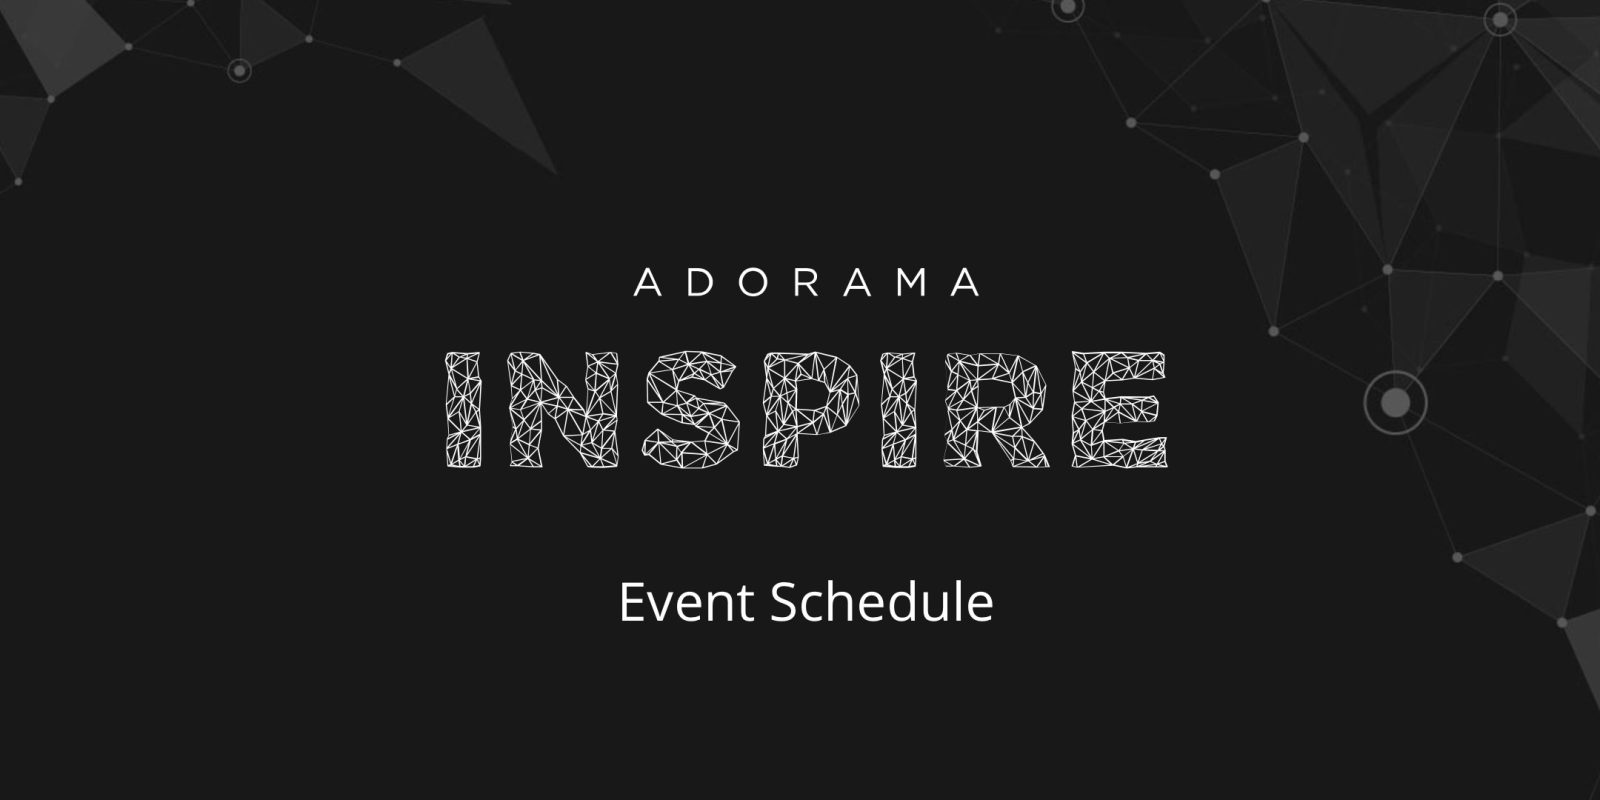 Dronedj spinning news information and reviews on the drone ecosystem adorama is holding inspire event in nyc with special drone workshops fandeluxe